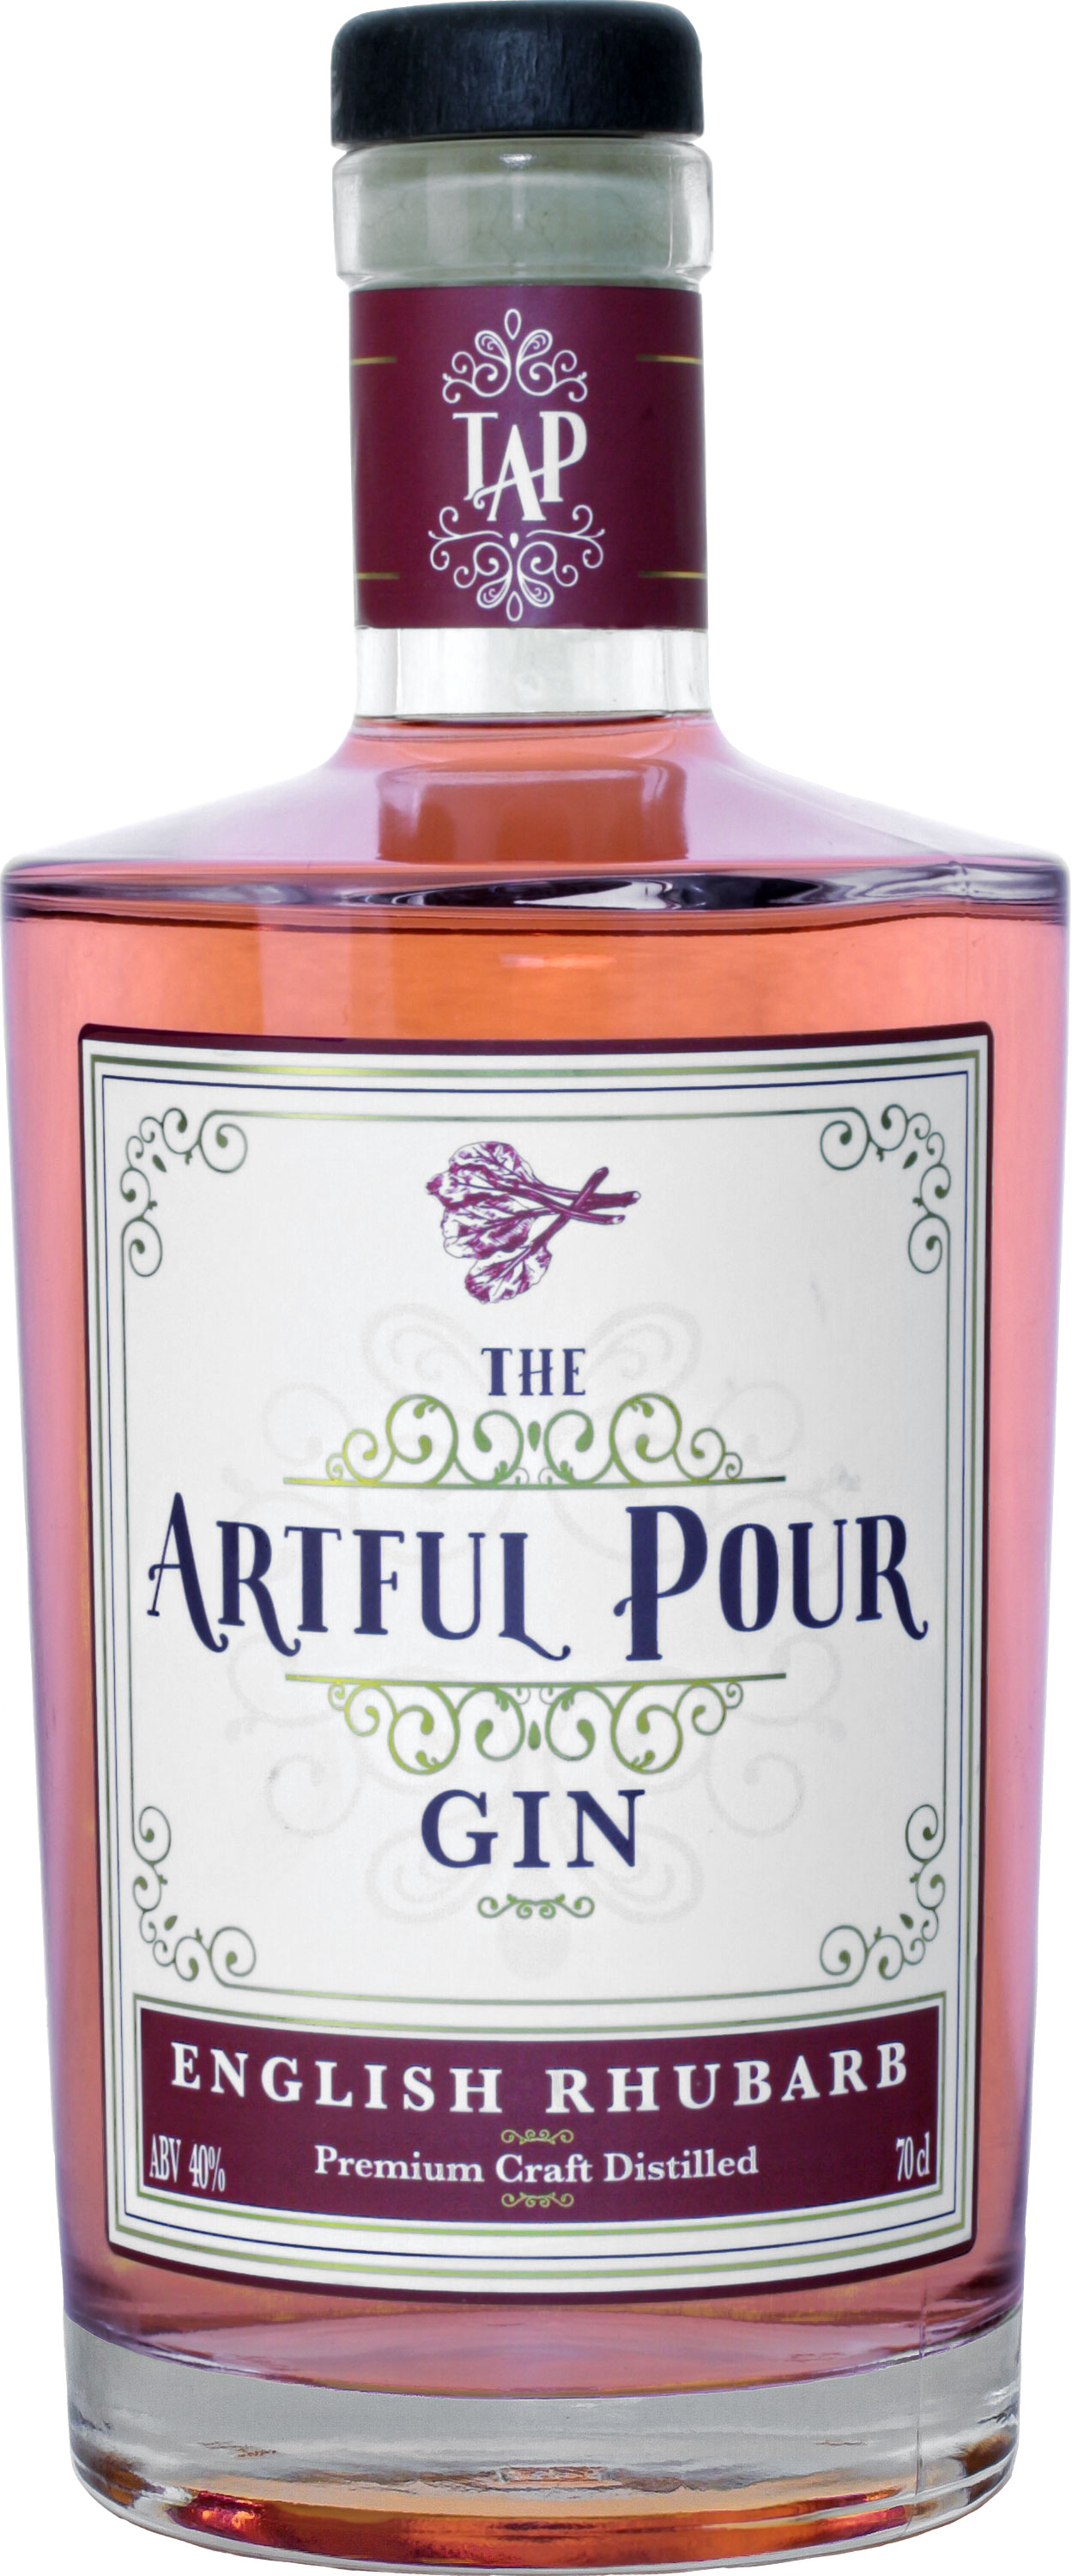 The Artful Pour - English Rhubarb Gin 70cl Bottle